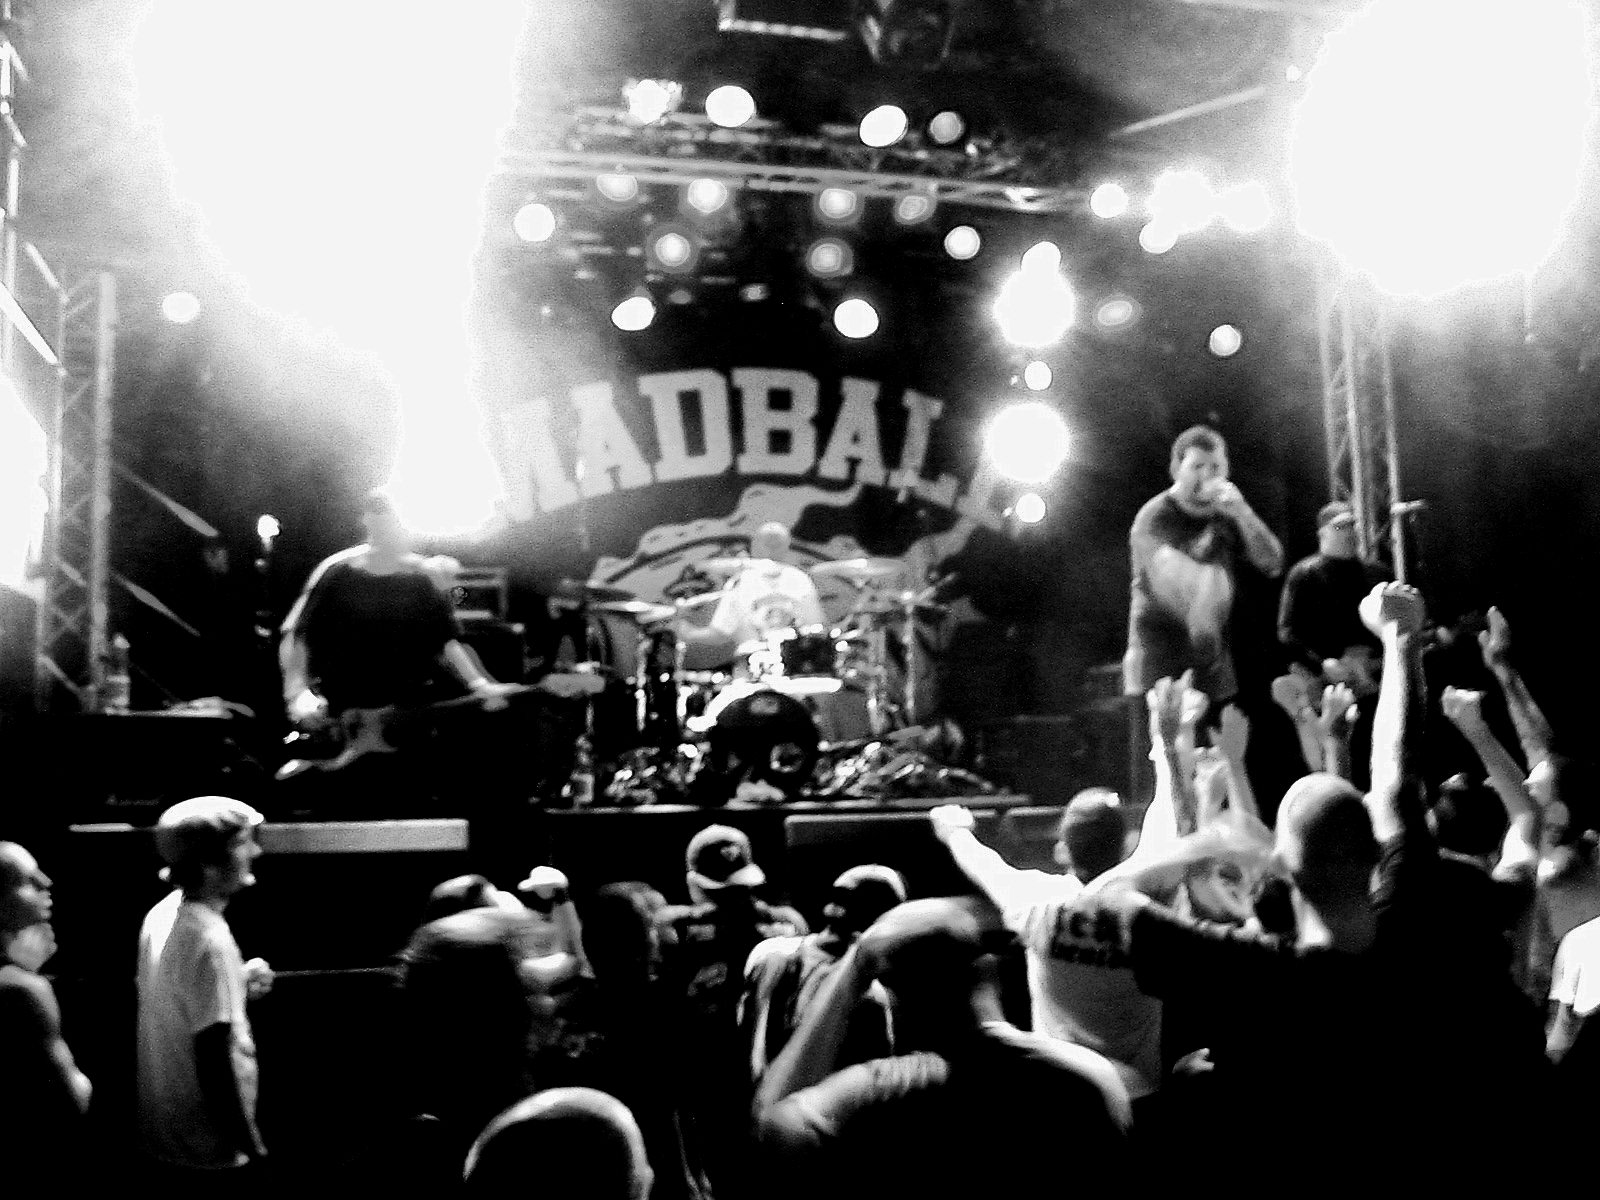 http://upload.wikimedia.org/wikipedia/commons/4/40/Madball.jpg